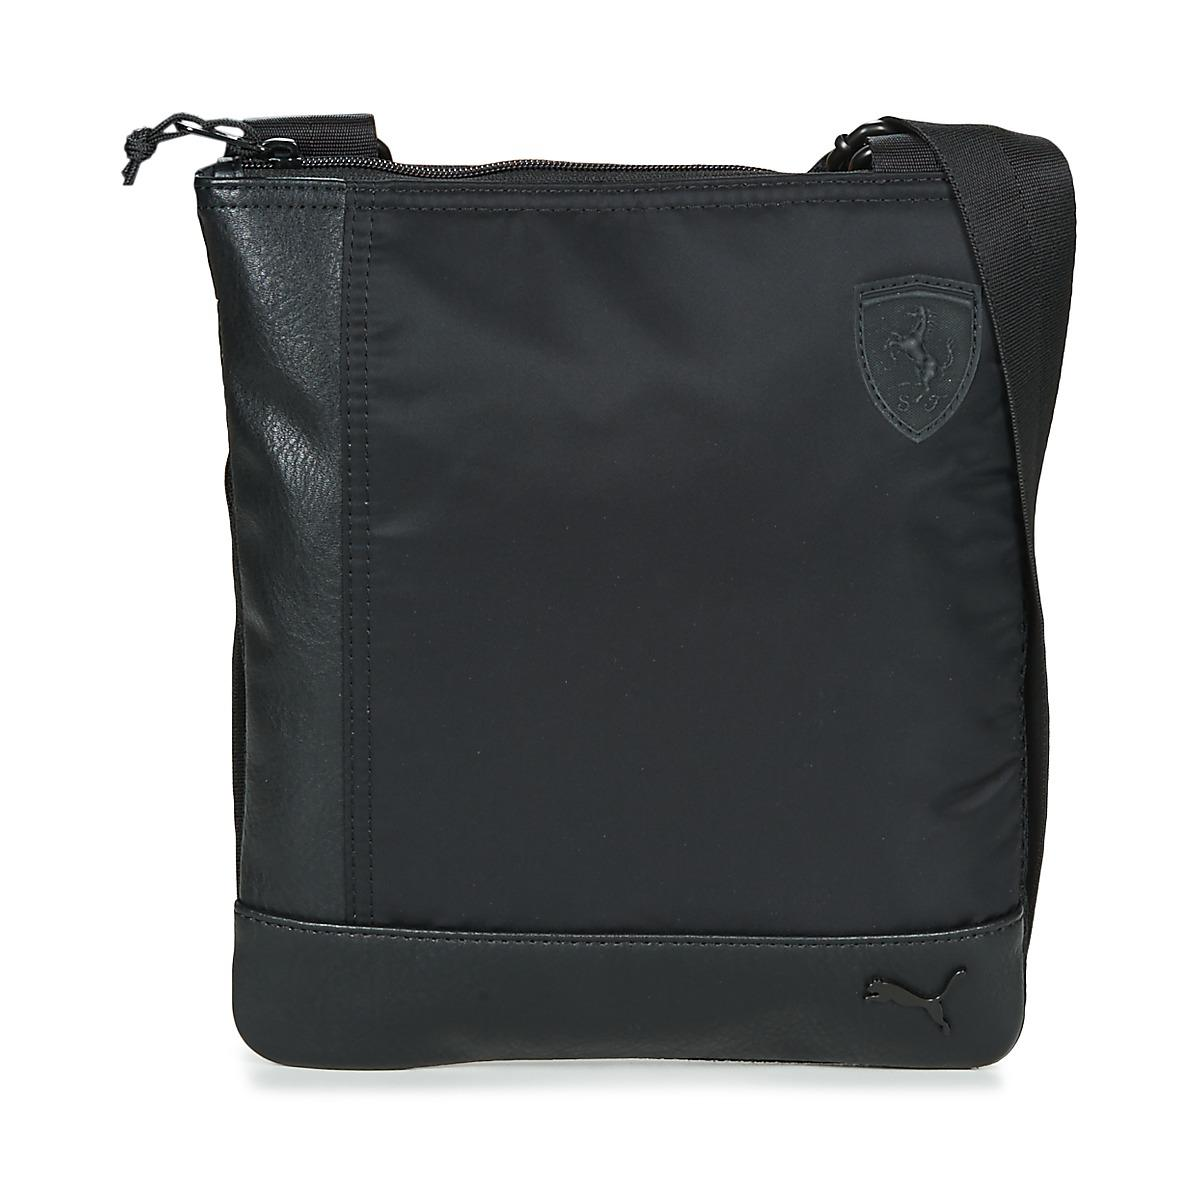 a857fdbb0a PUMA Ferrari Ls Flat Portable Men s Pouch In Black in Black for Men ...